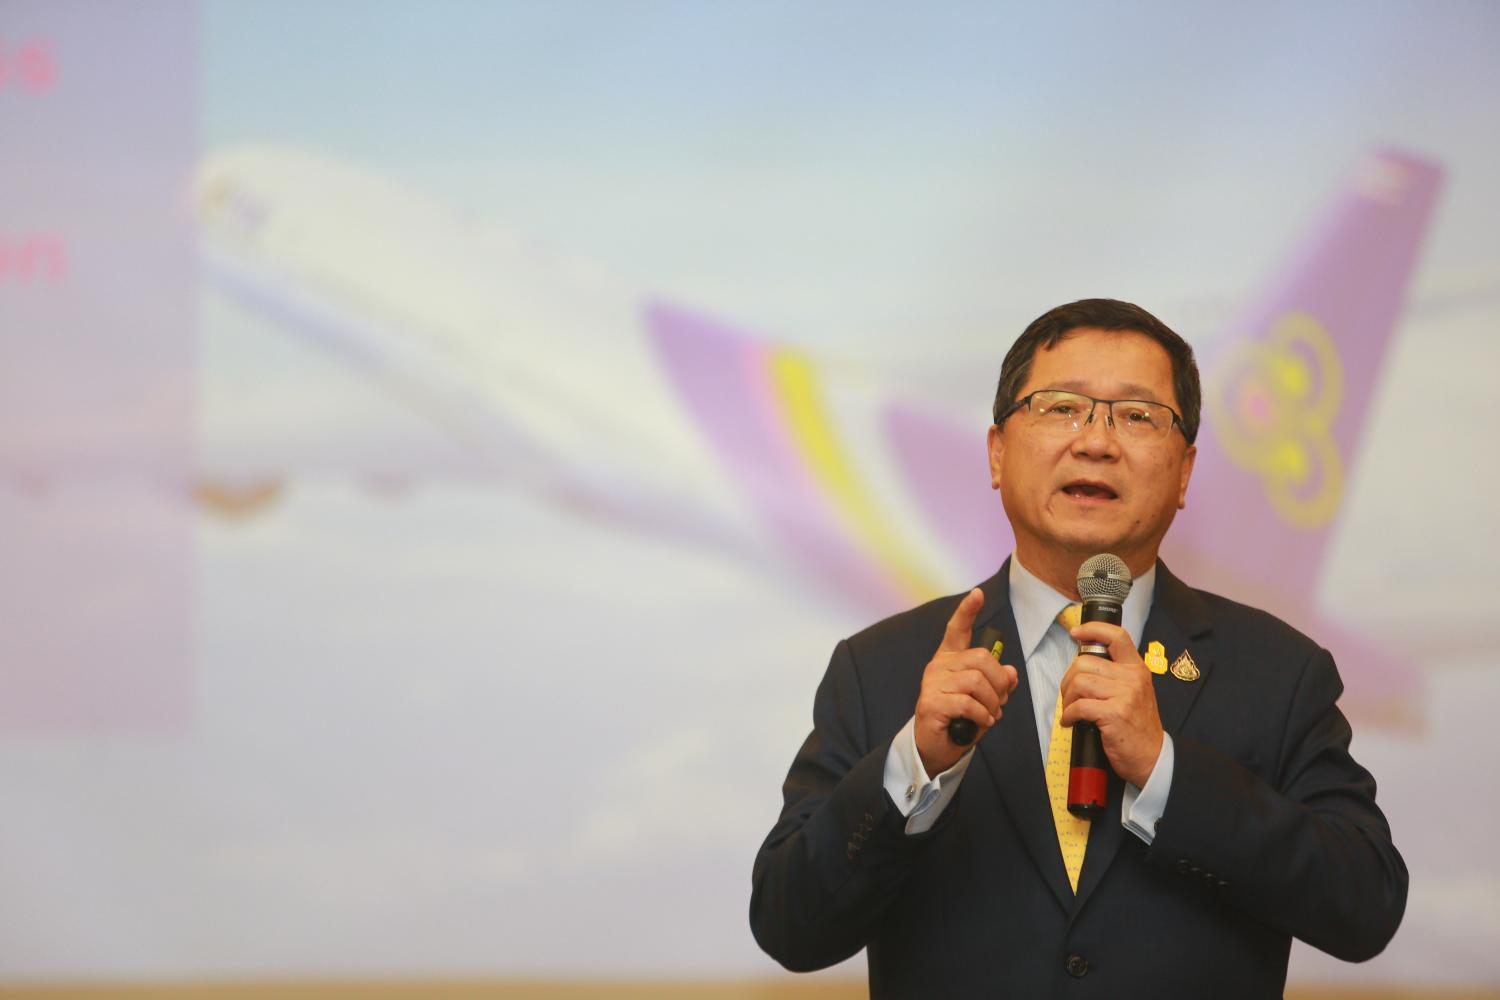 Chansin Treenuchagron, THAI's acting president, at a press conference on Tuesday.